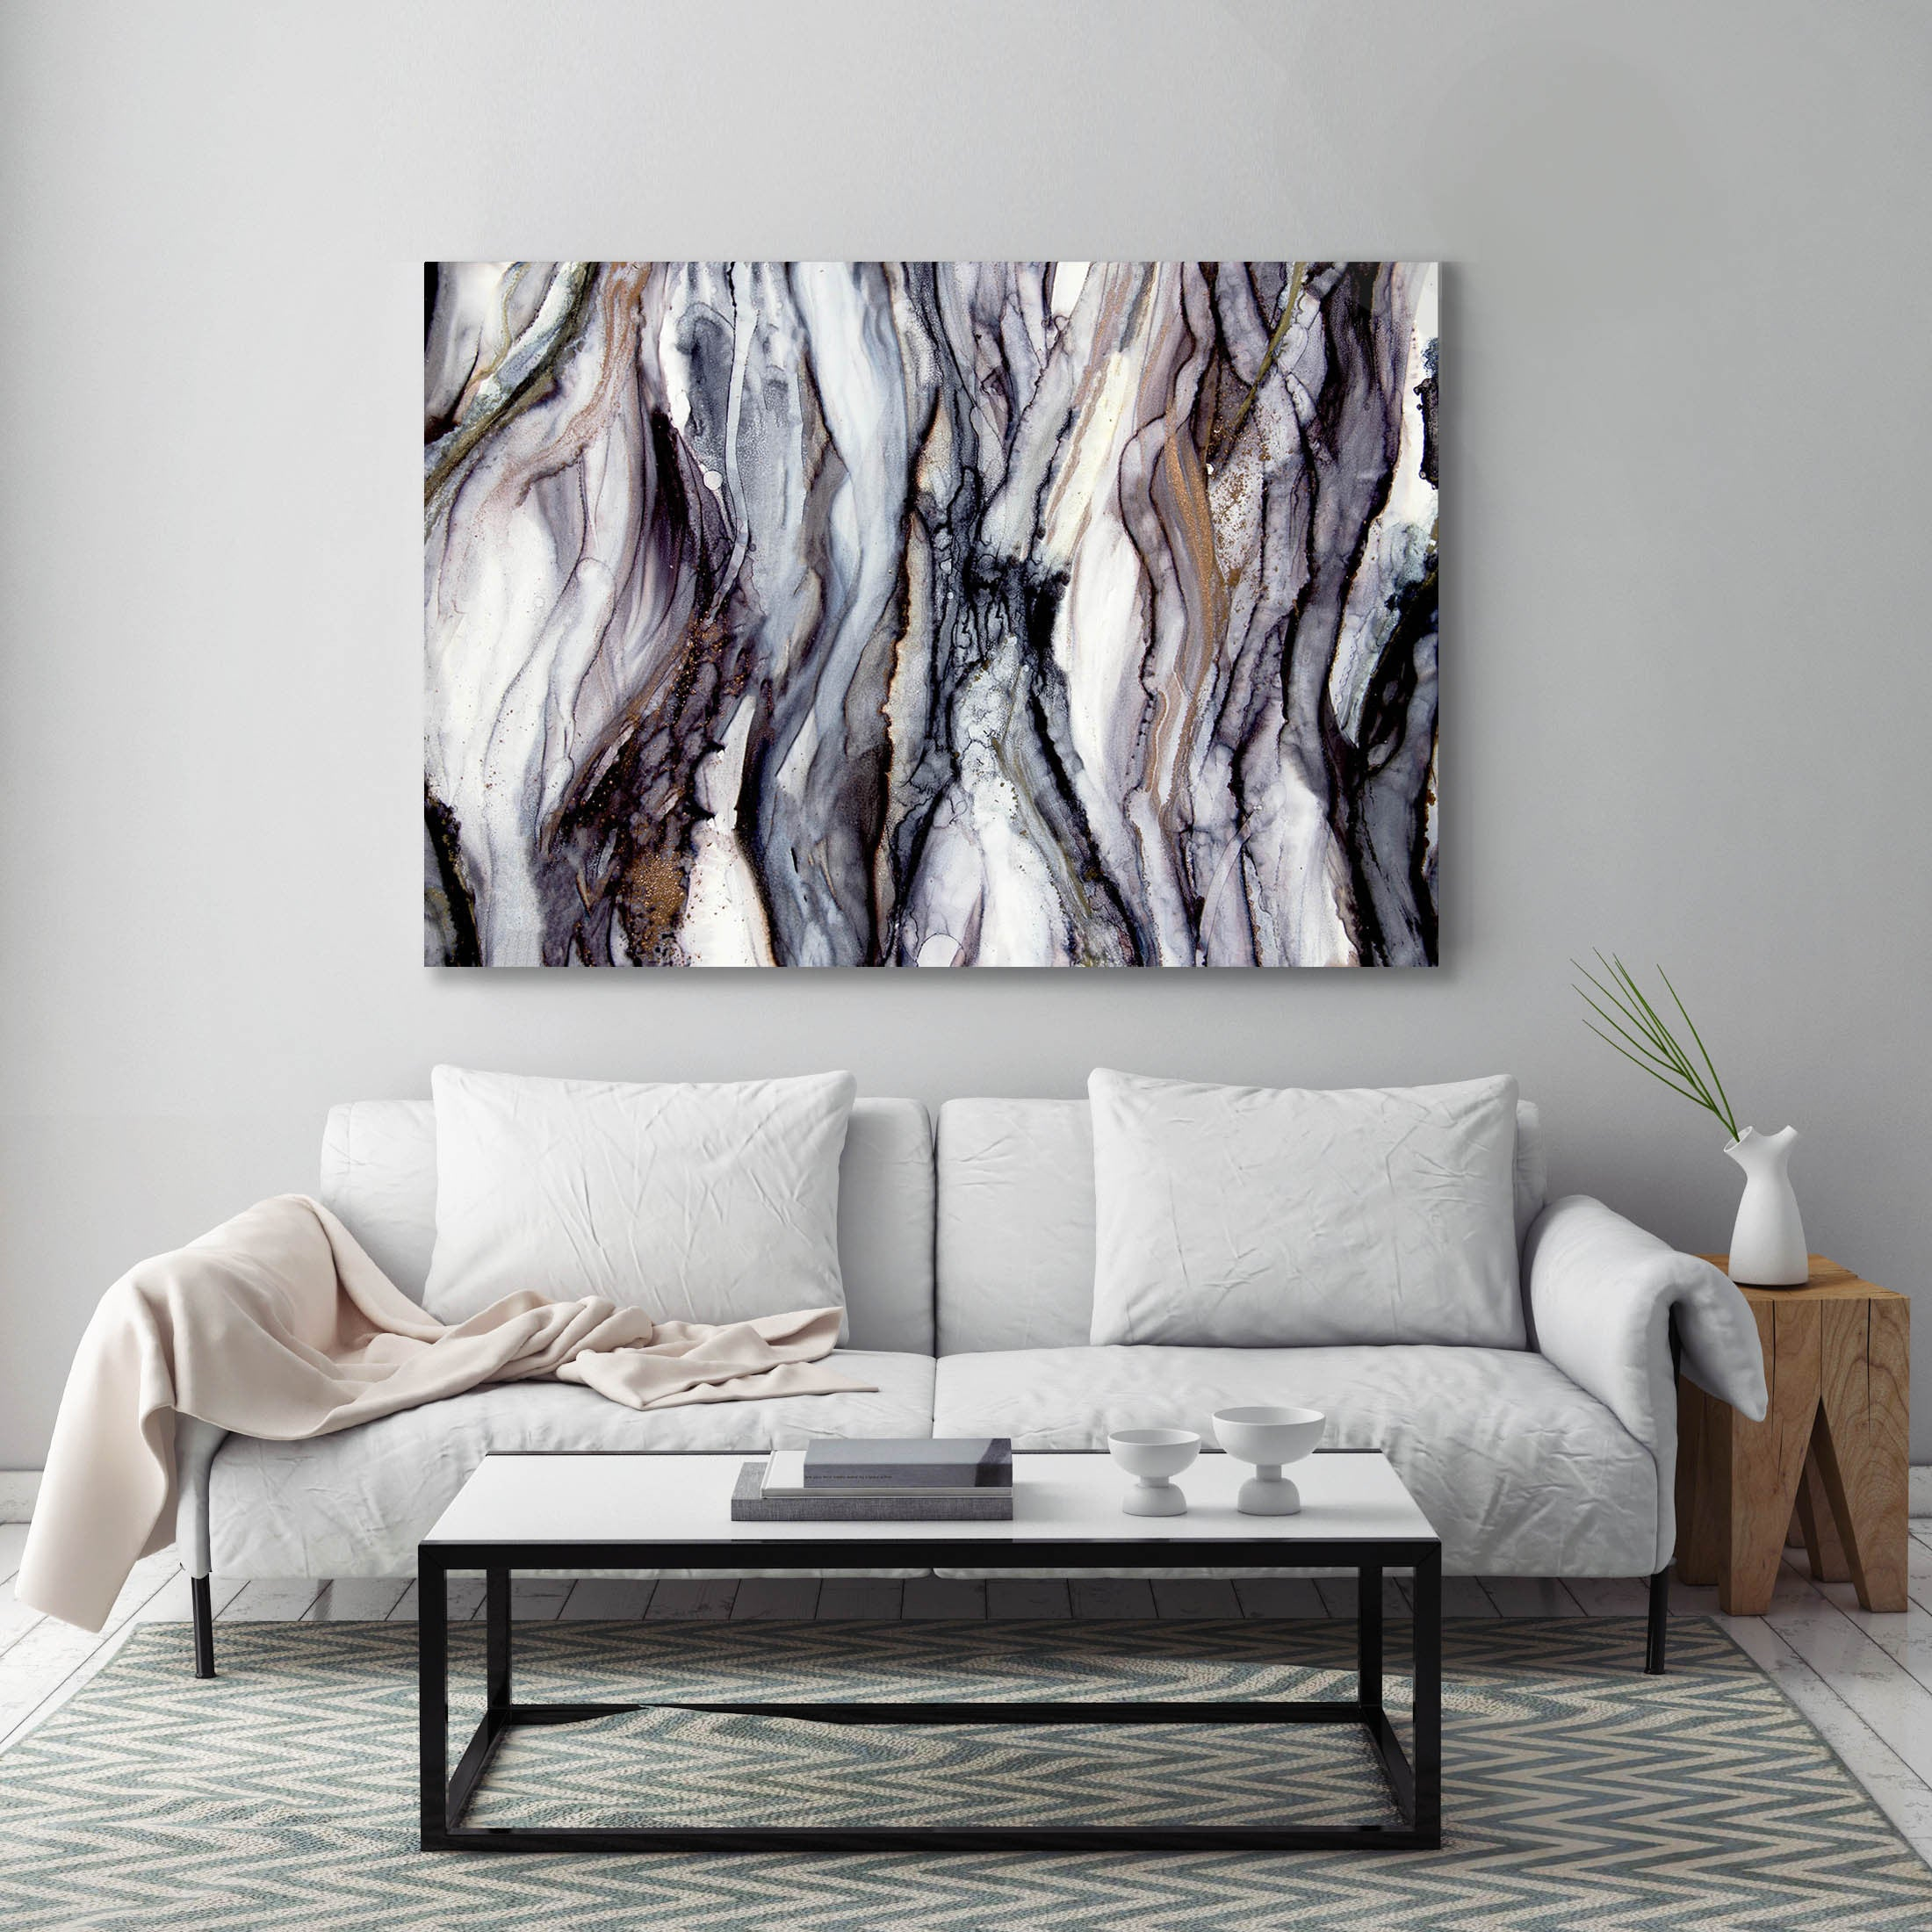 Interior design Acrylic Artwork